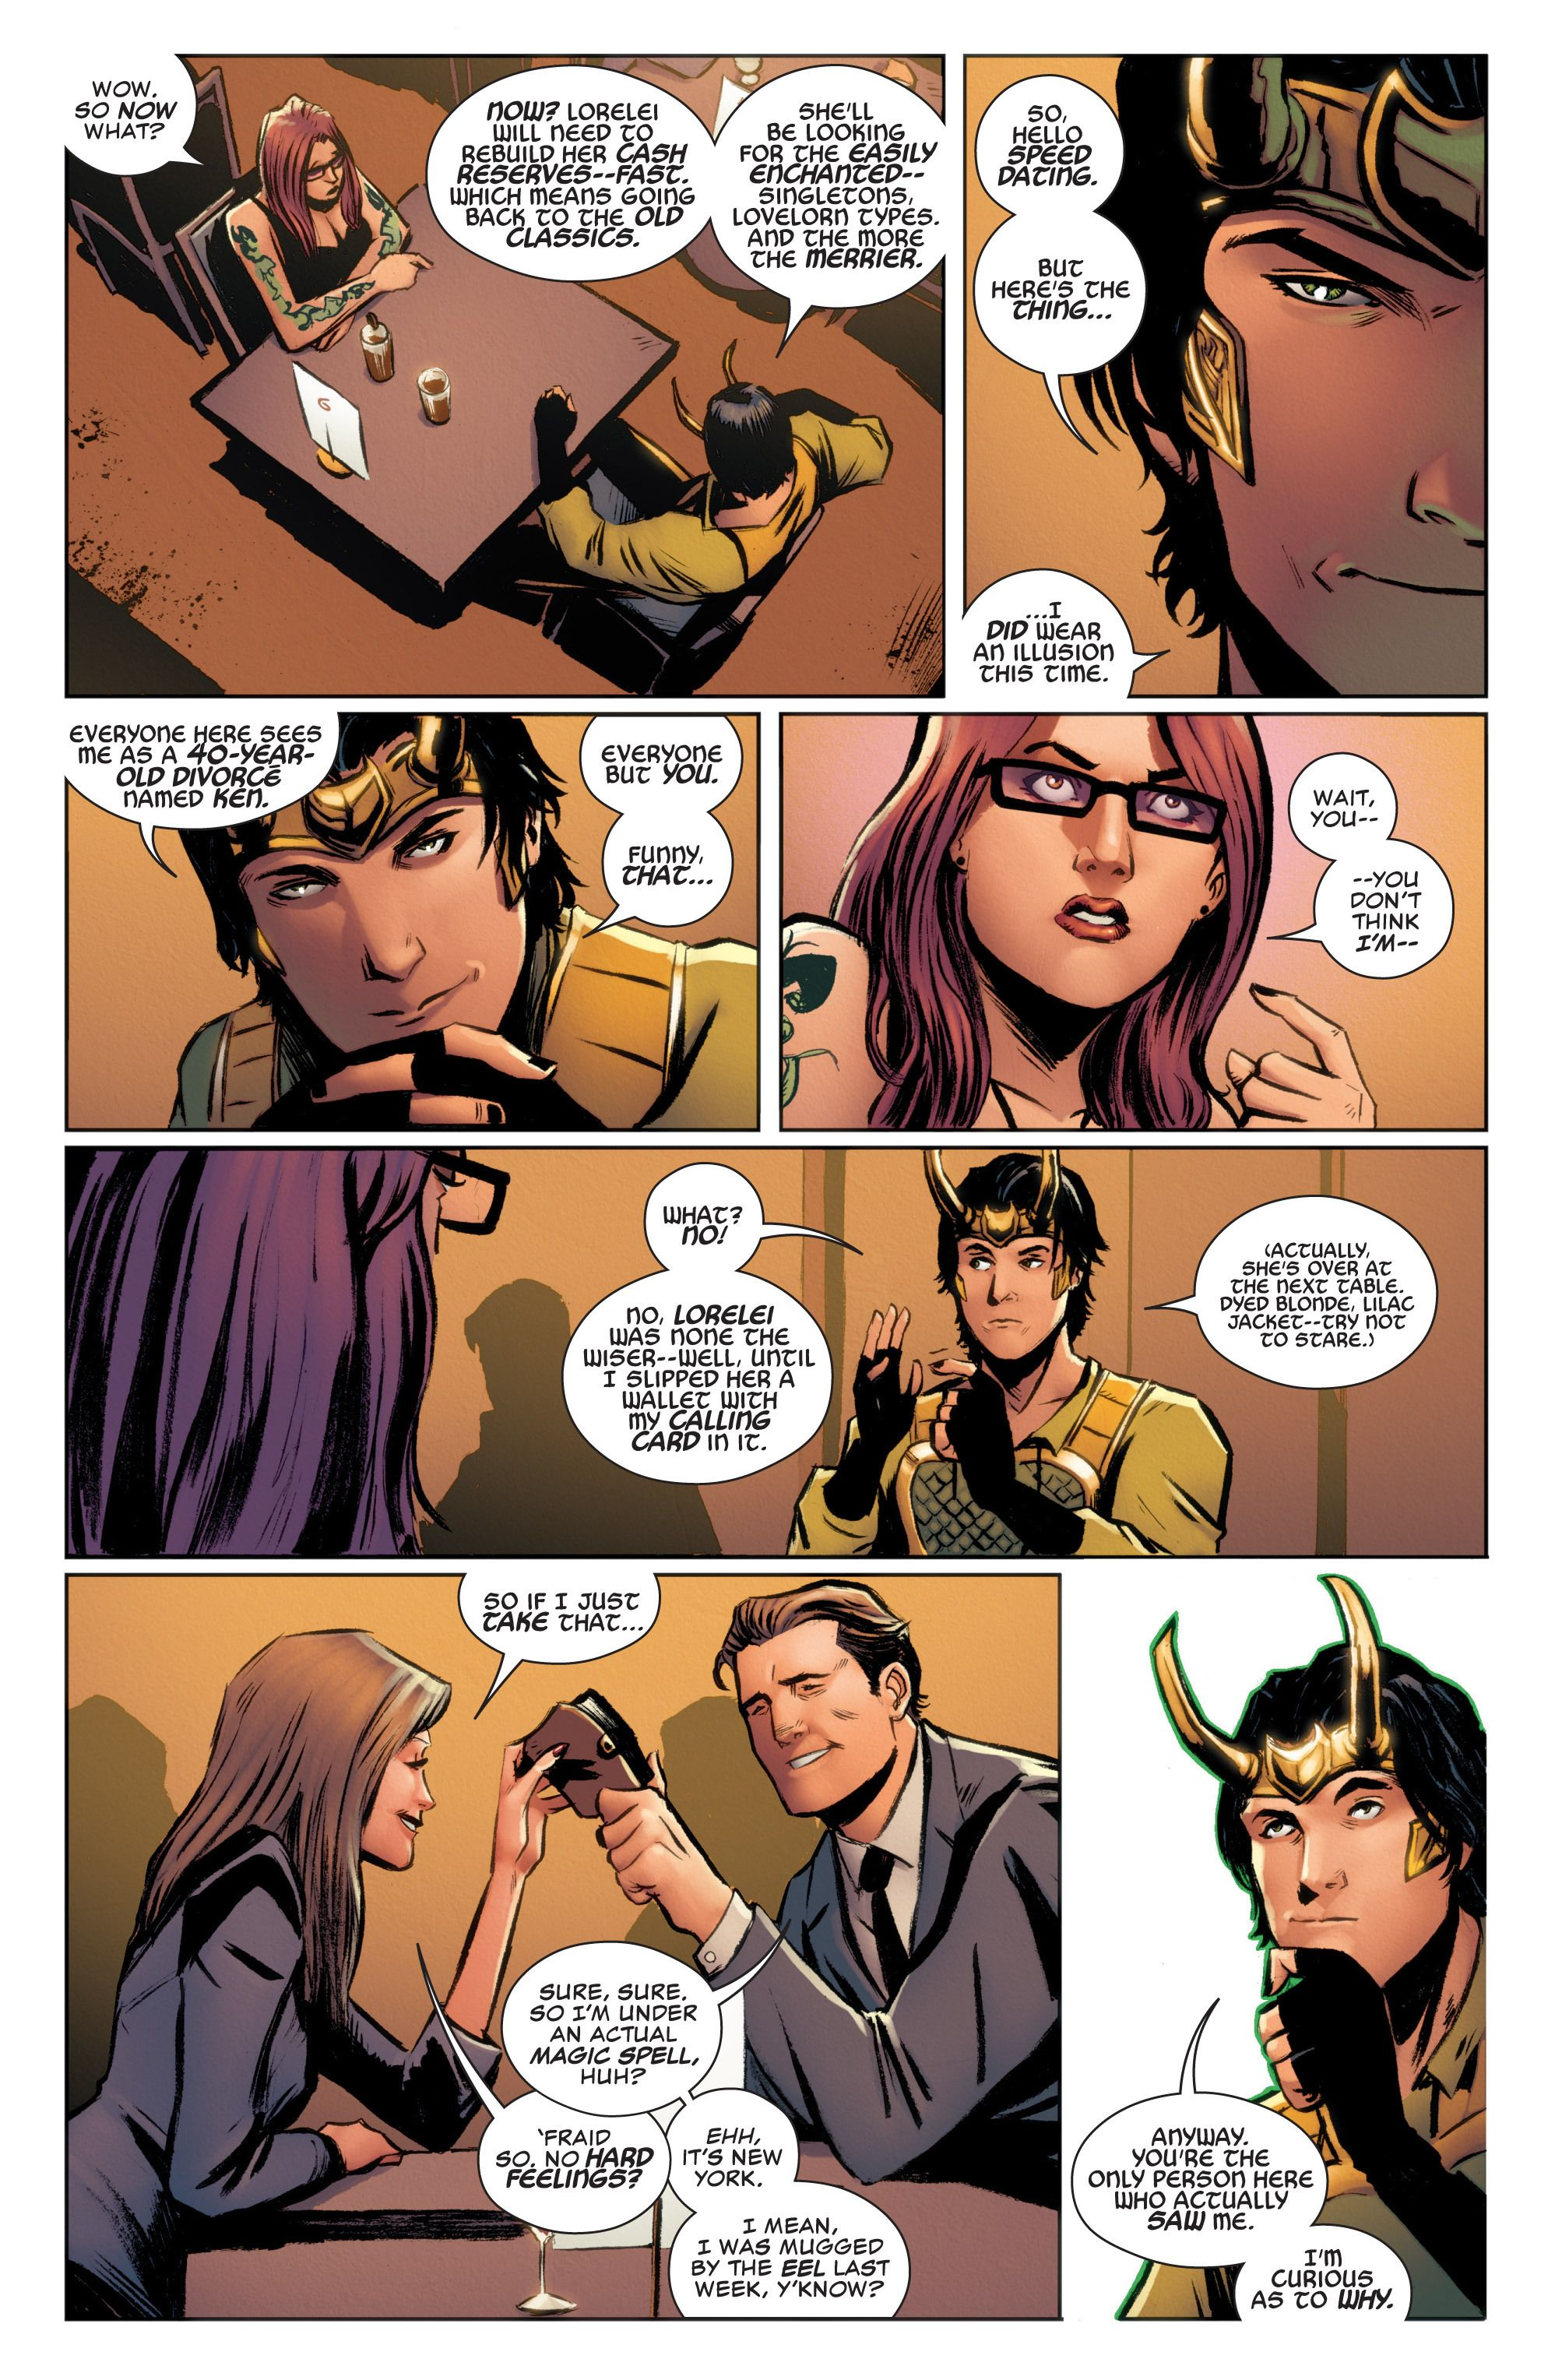 Loki agent of asgard 2 speed dating